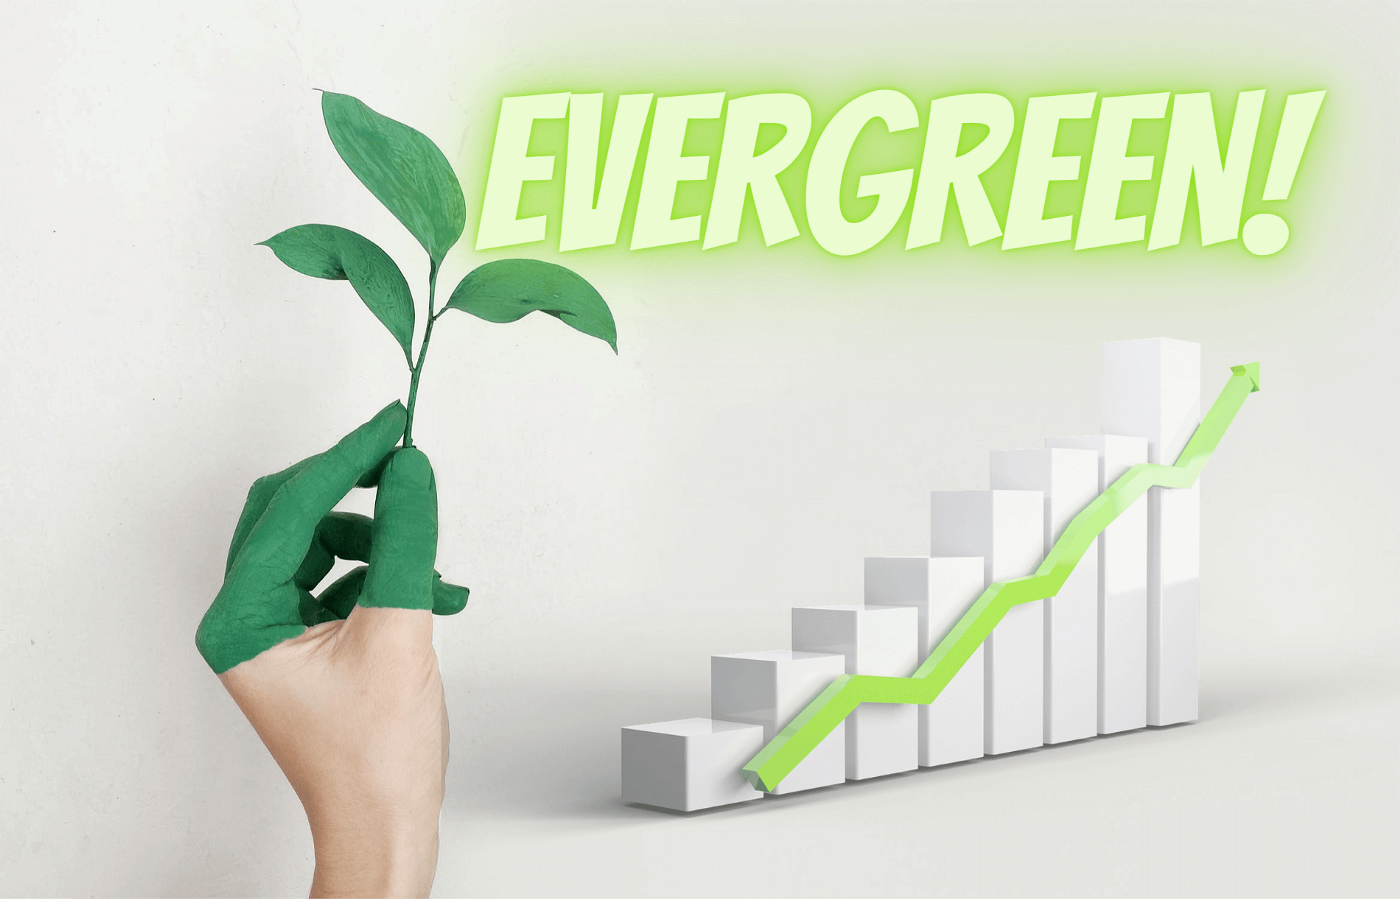 On the left a Hand with green painted fingers holding a evergreen leaf; on the right a graphic showing exponential growth.